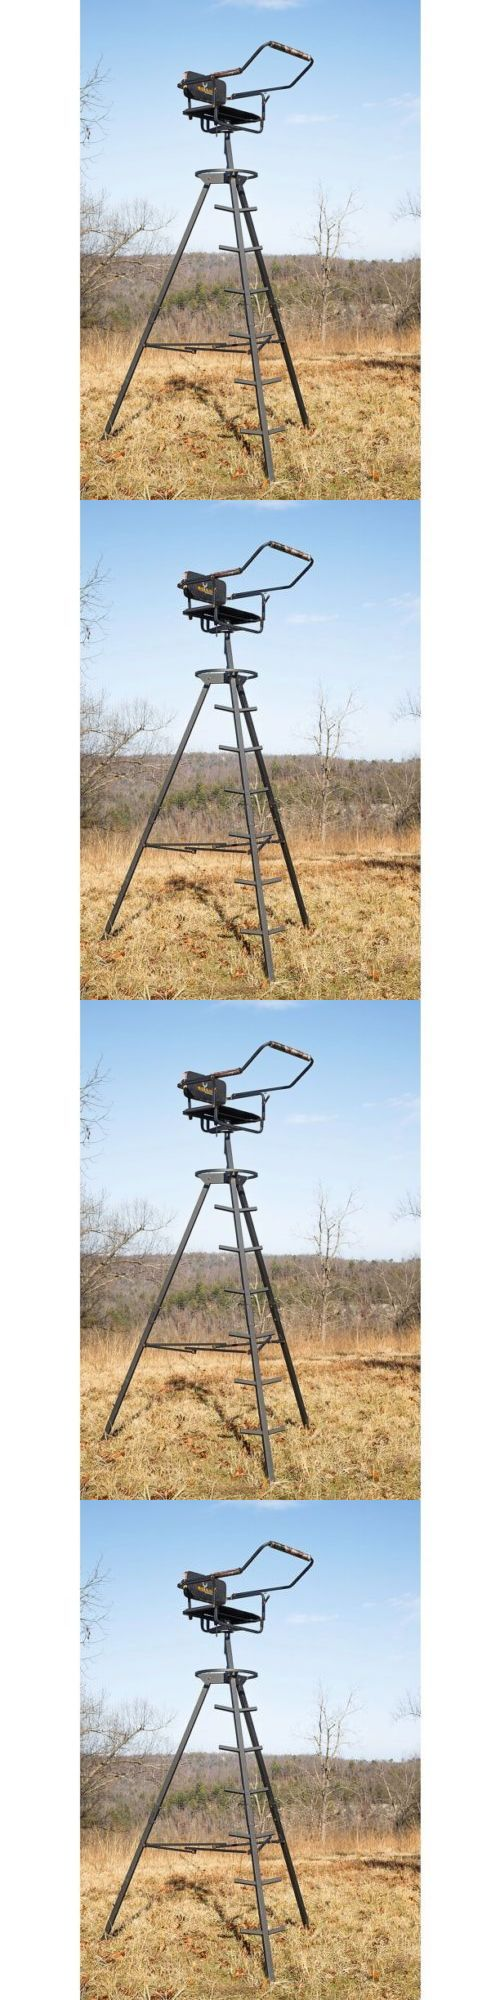 Tree Stands 52508: Deer Hunting Ladder Stand Foldable Tripod 10 Portable Lightweight Hunt Swivel -> BUY IT NOW ONLY: $128.5 on eBay!